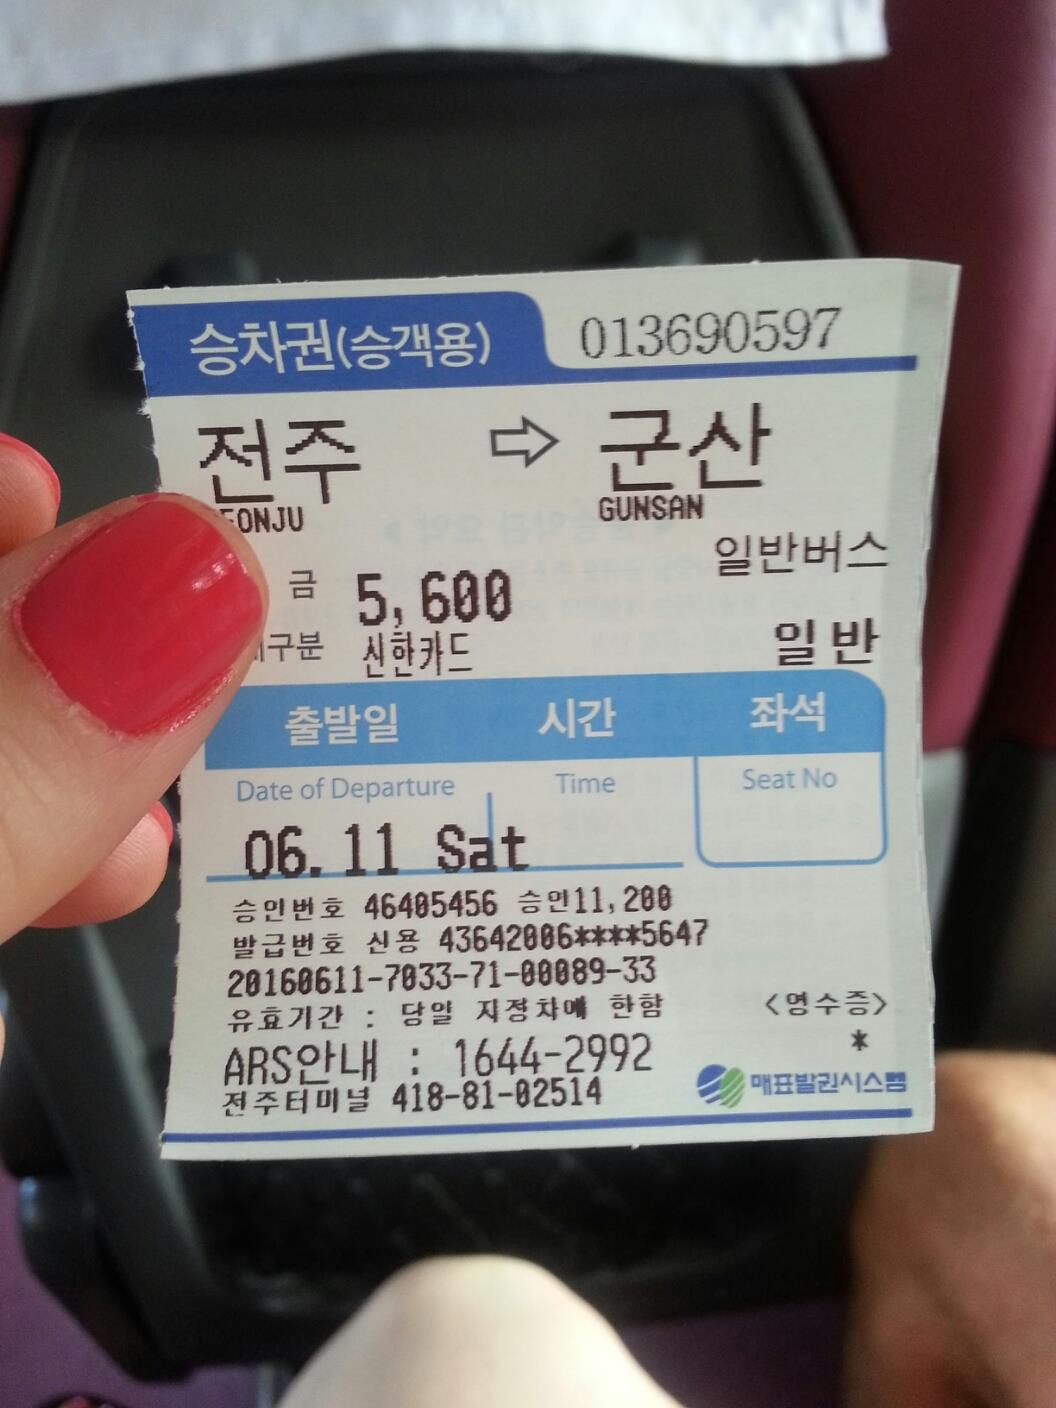 Bus ticket from Jeonju to Gunsan.